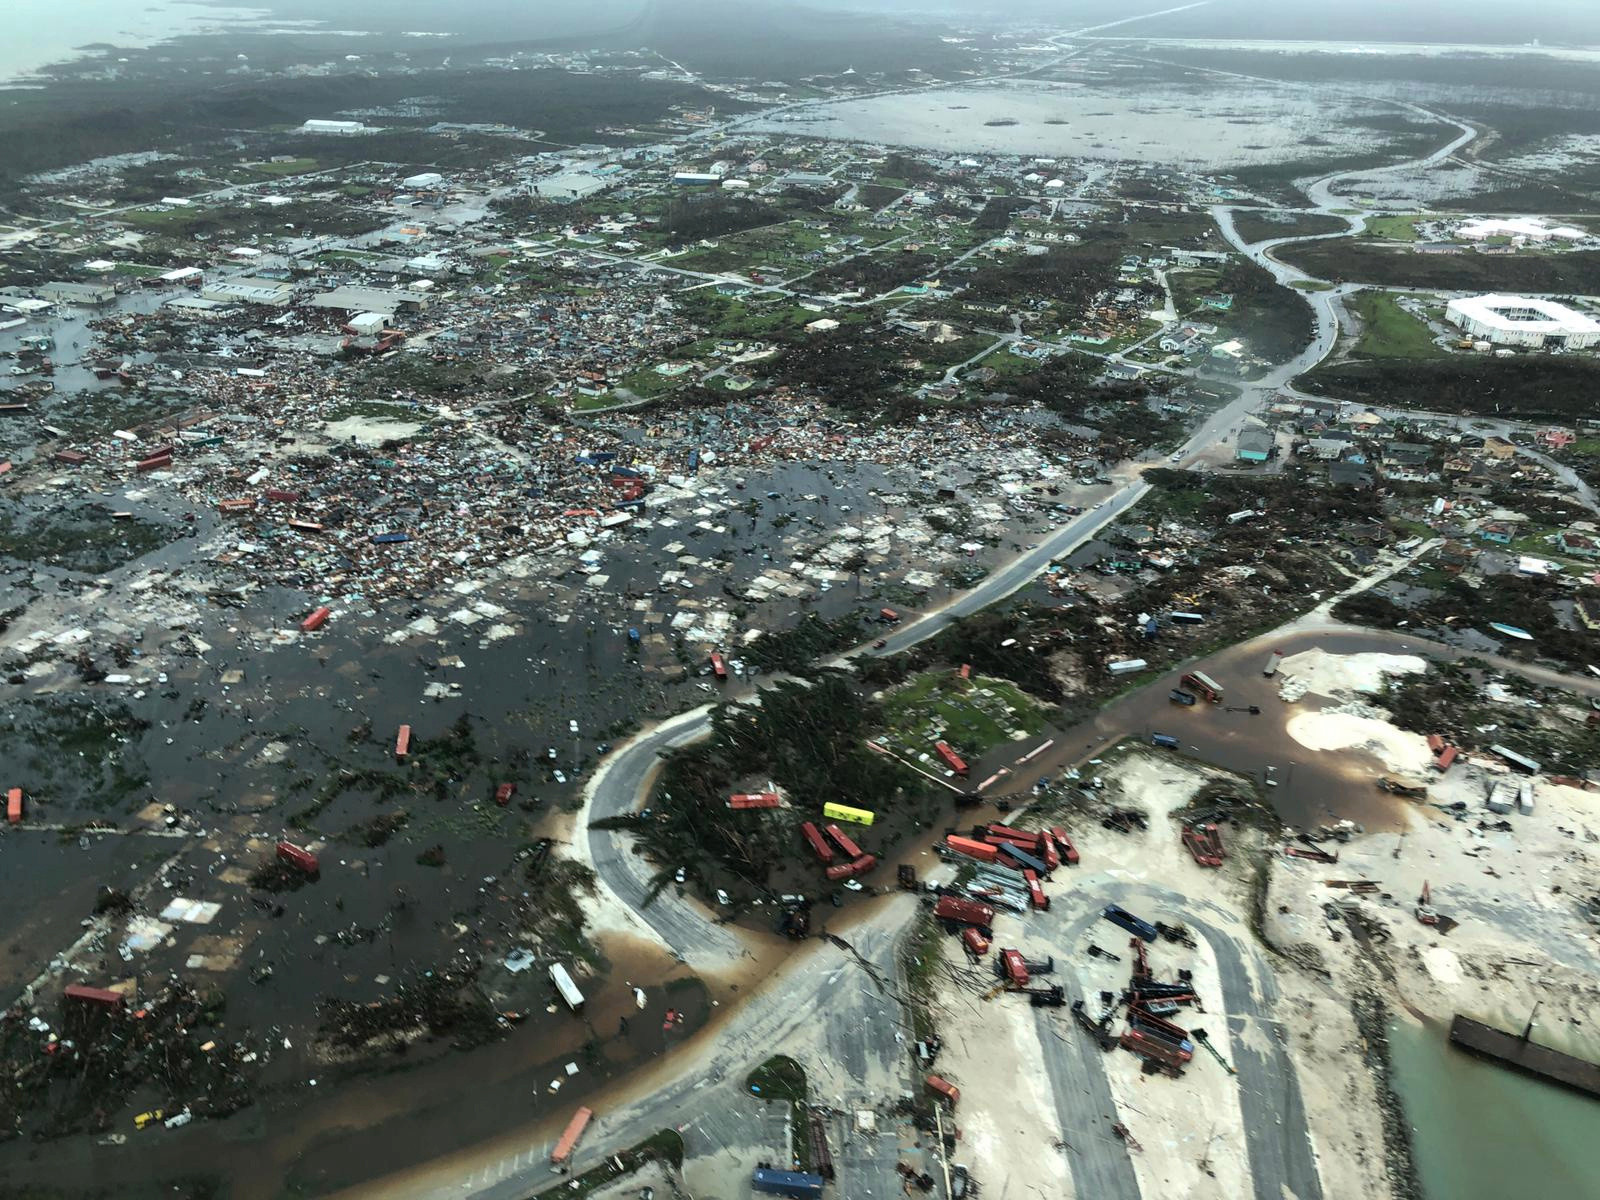 Aerial shots show the devastation caused to the Abaco Islands in the Bahamas